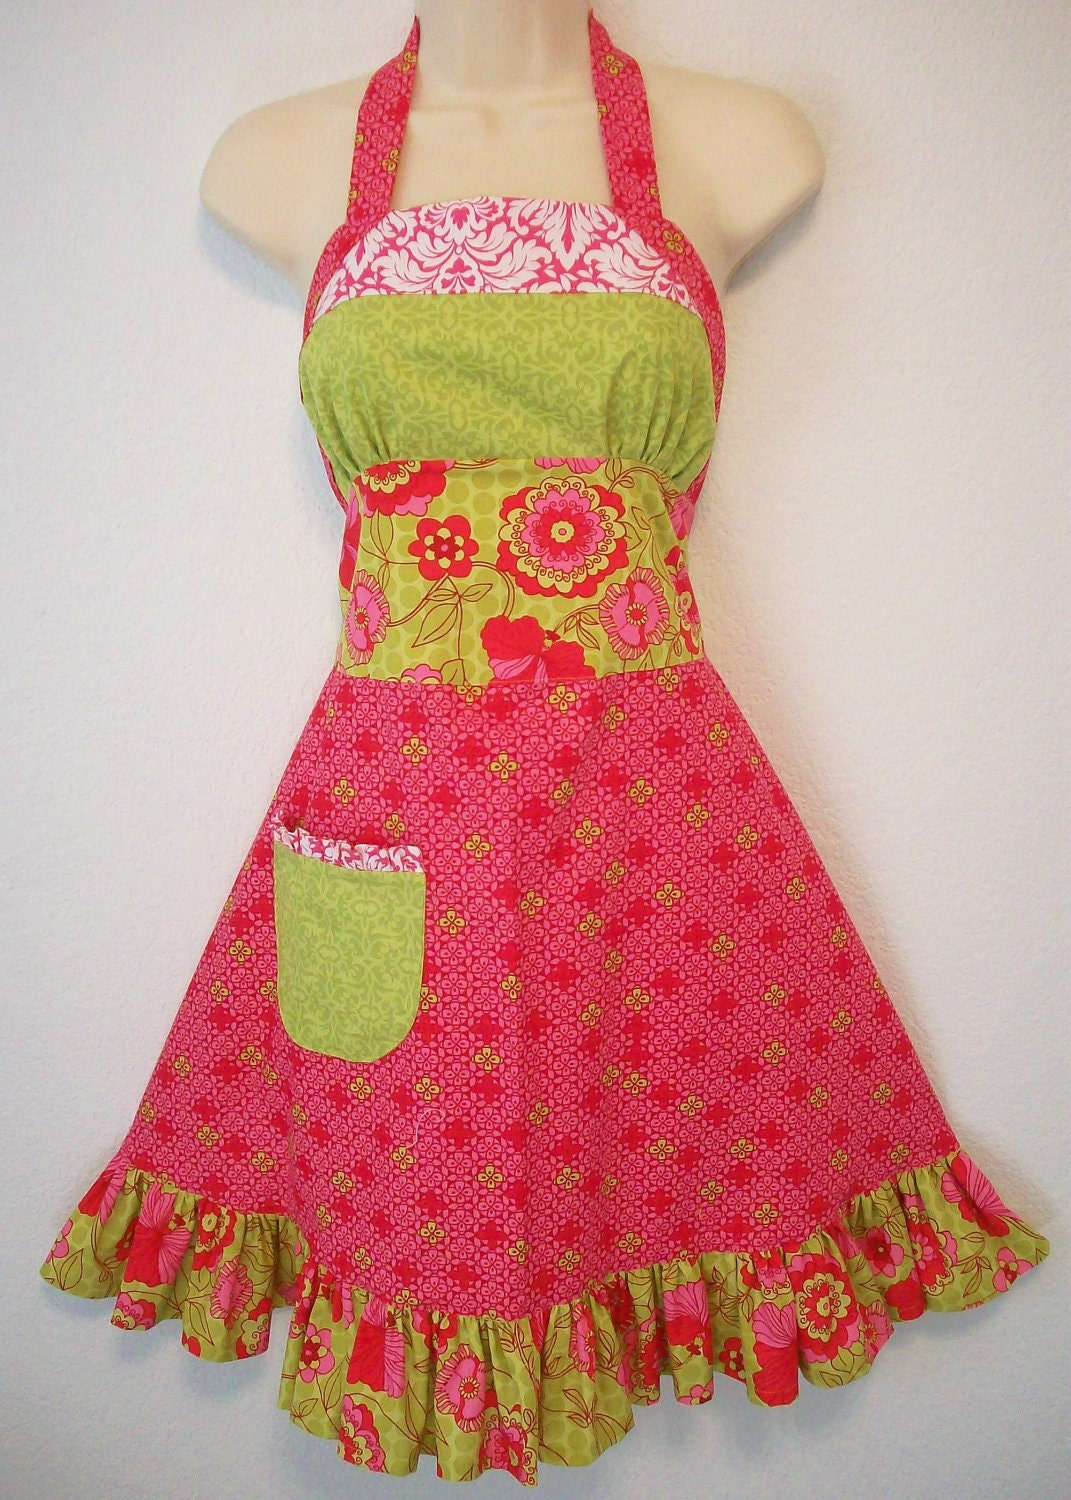 Womens Ruffled Apron Retro Apron Green Amp Pink Floral